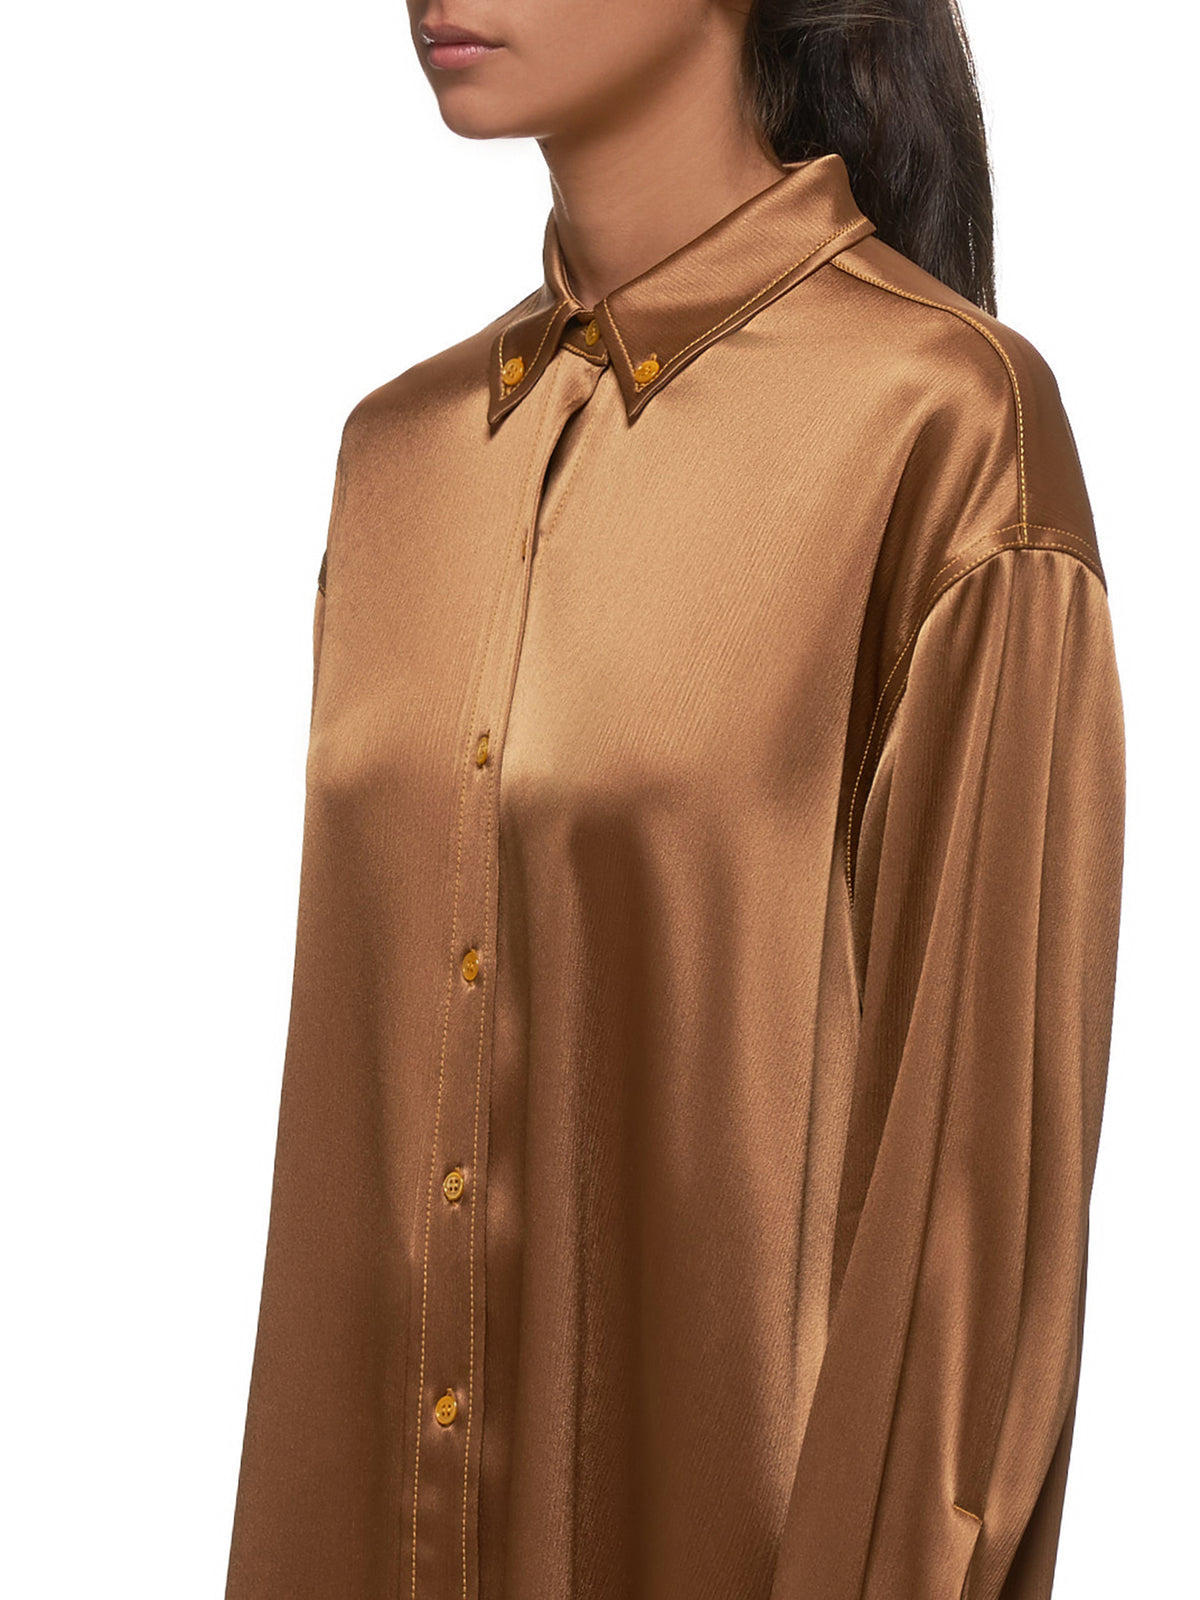 Kiki Crinkled Oversized Satin Shirt (15KS3097-GOLD)